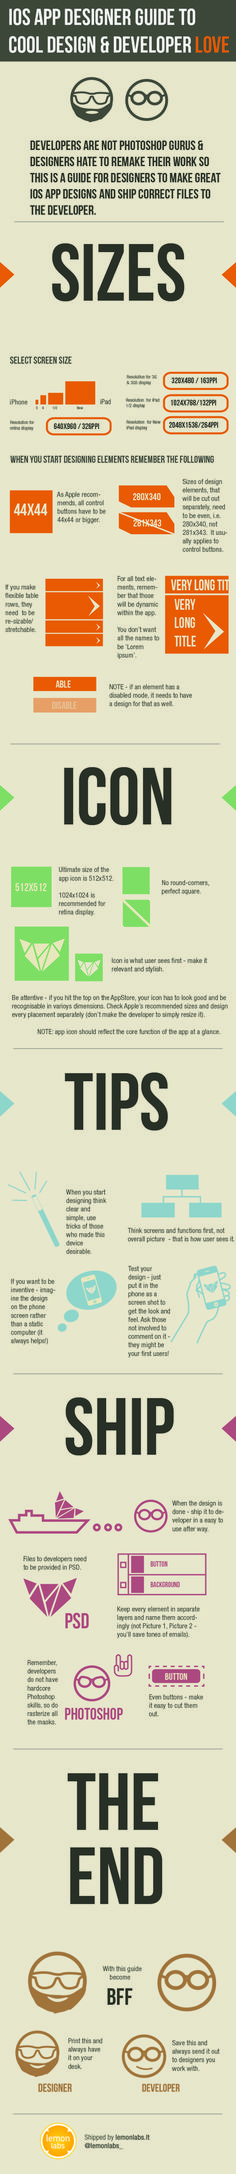 tips for iOS app designers